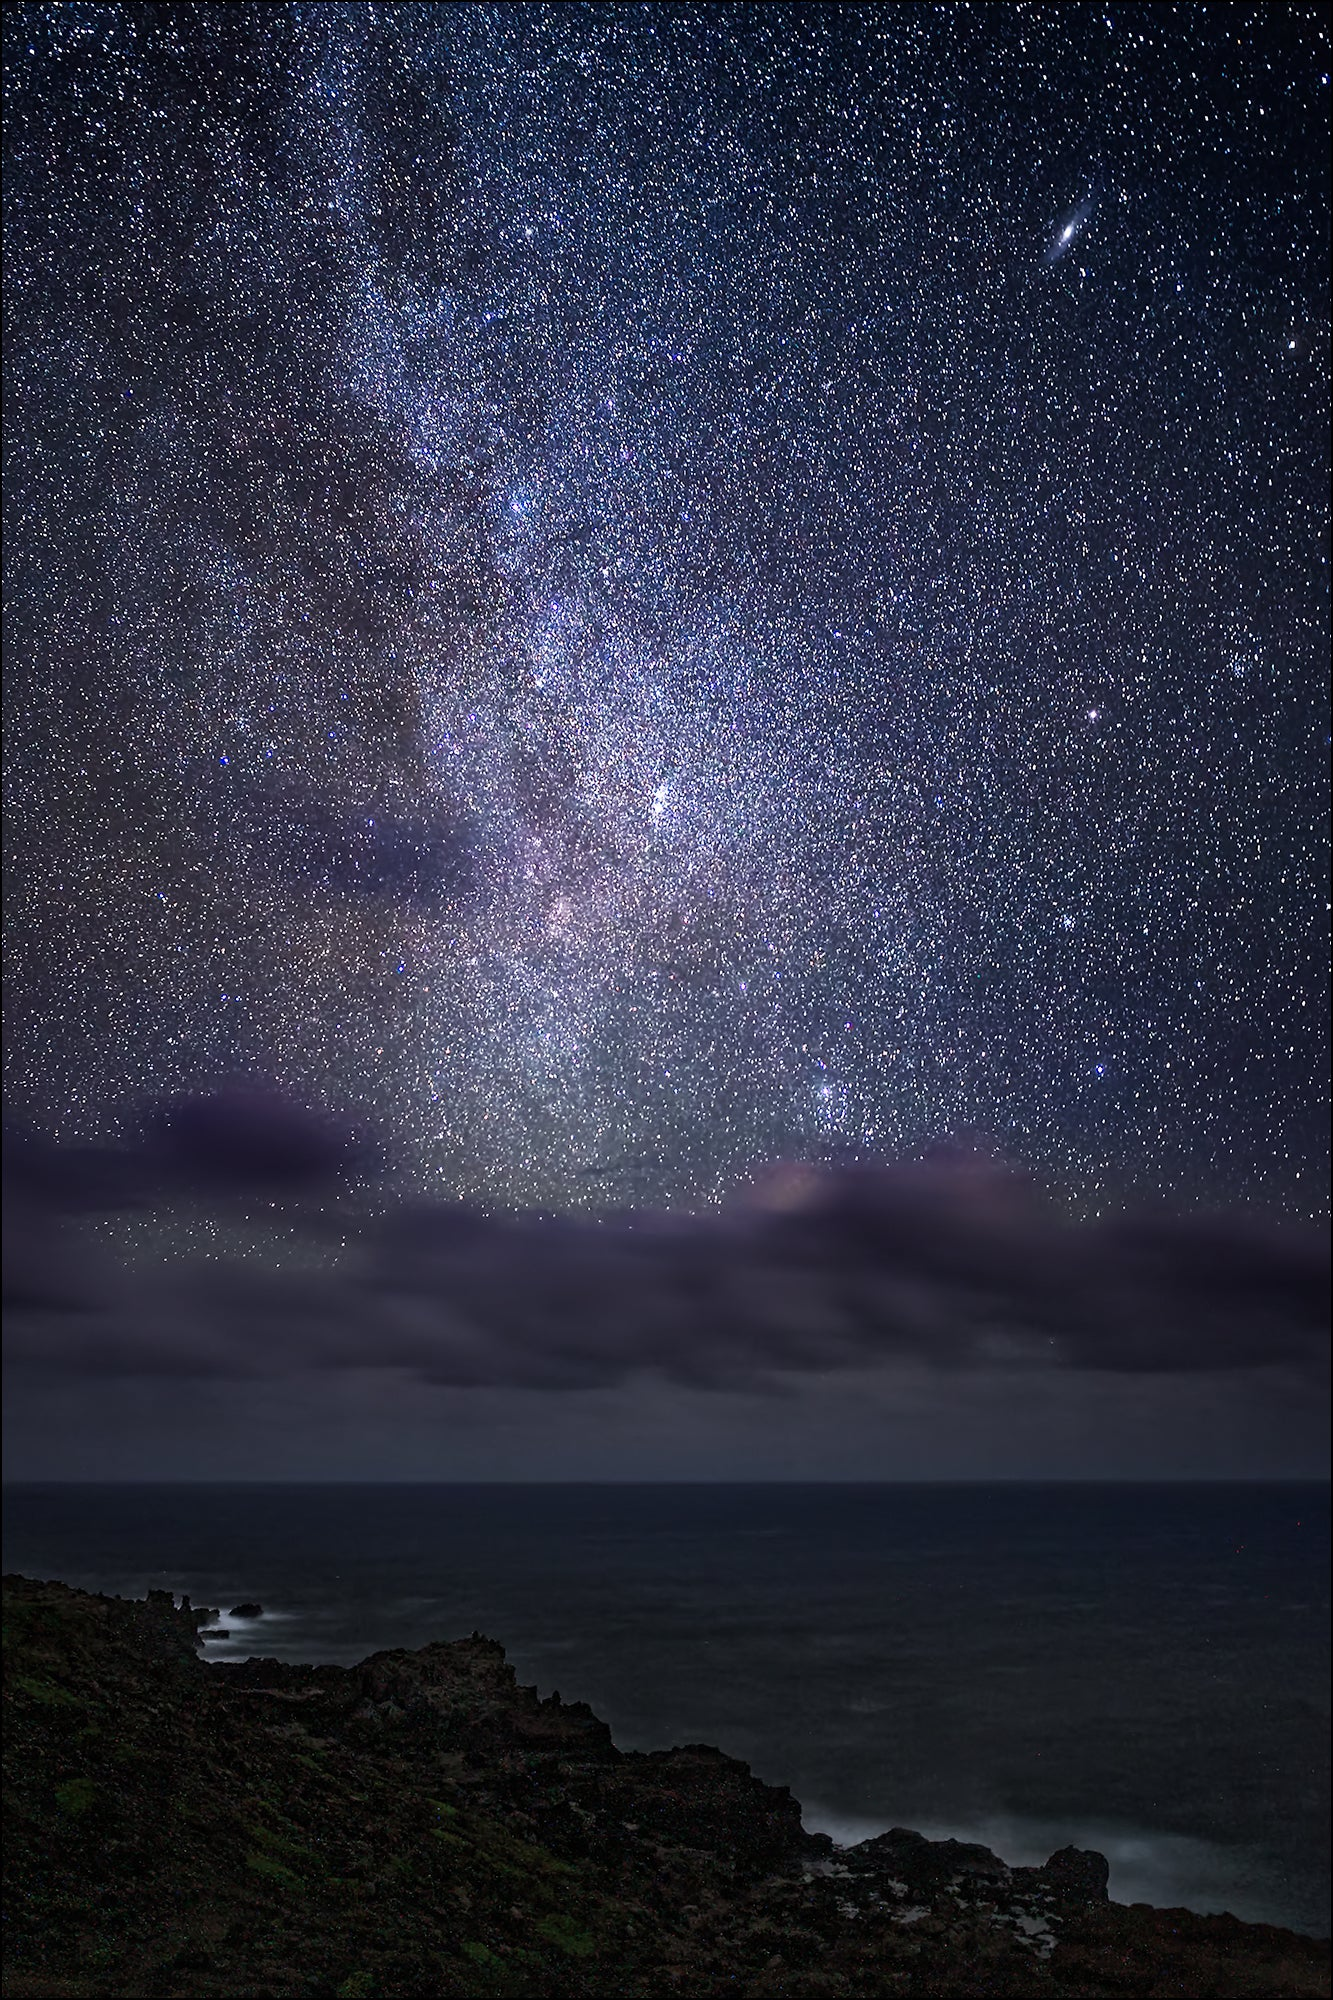 Sony 24mm f/1 4 GM First Looks For Street, Astroscapes